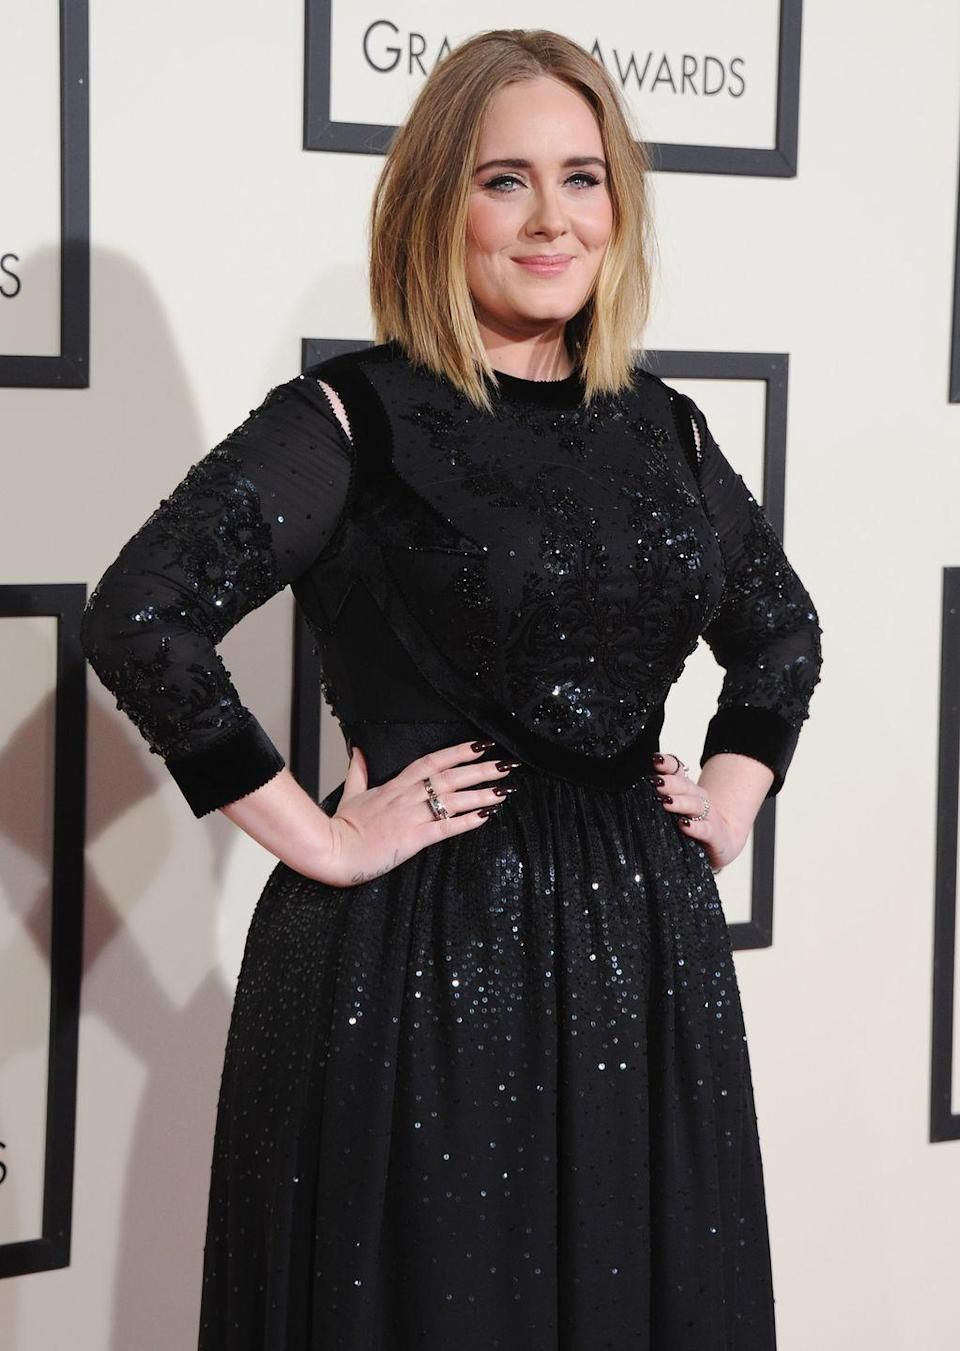 "<p>""I can slip in and out of [depression] quite easily,"" Adele told <a href=""http://www.vanityfair.com/style/2016/10/adele-postpartum-depression-parenting"" rel=""nofollow noopener"" target=""_blank"" data-ylk=""slk:Vanity Fair"" class=""link rapid-noclick-resp"">Vanity Fair</a>. ""I had really bad postpartum depression after I had my son, and it frightened me,"" she said. ""I didn't talk to anyone about it. I was very reluctant...Four of my friends felt the same way I did, and everyone was too embarrassed to talk about it.""</p>"